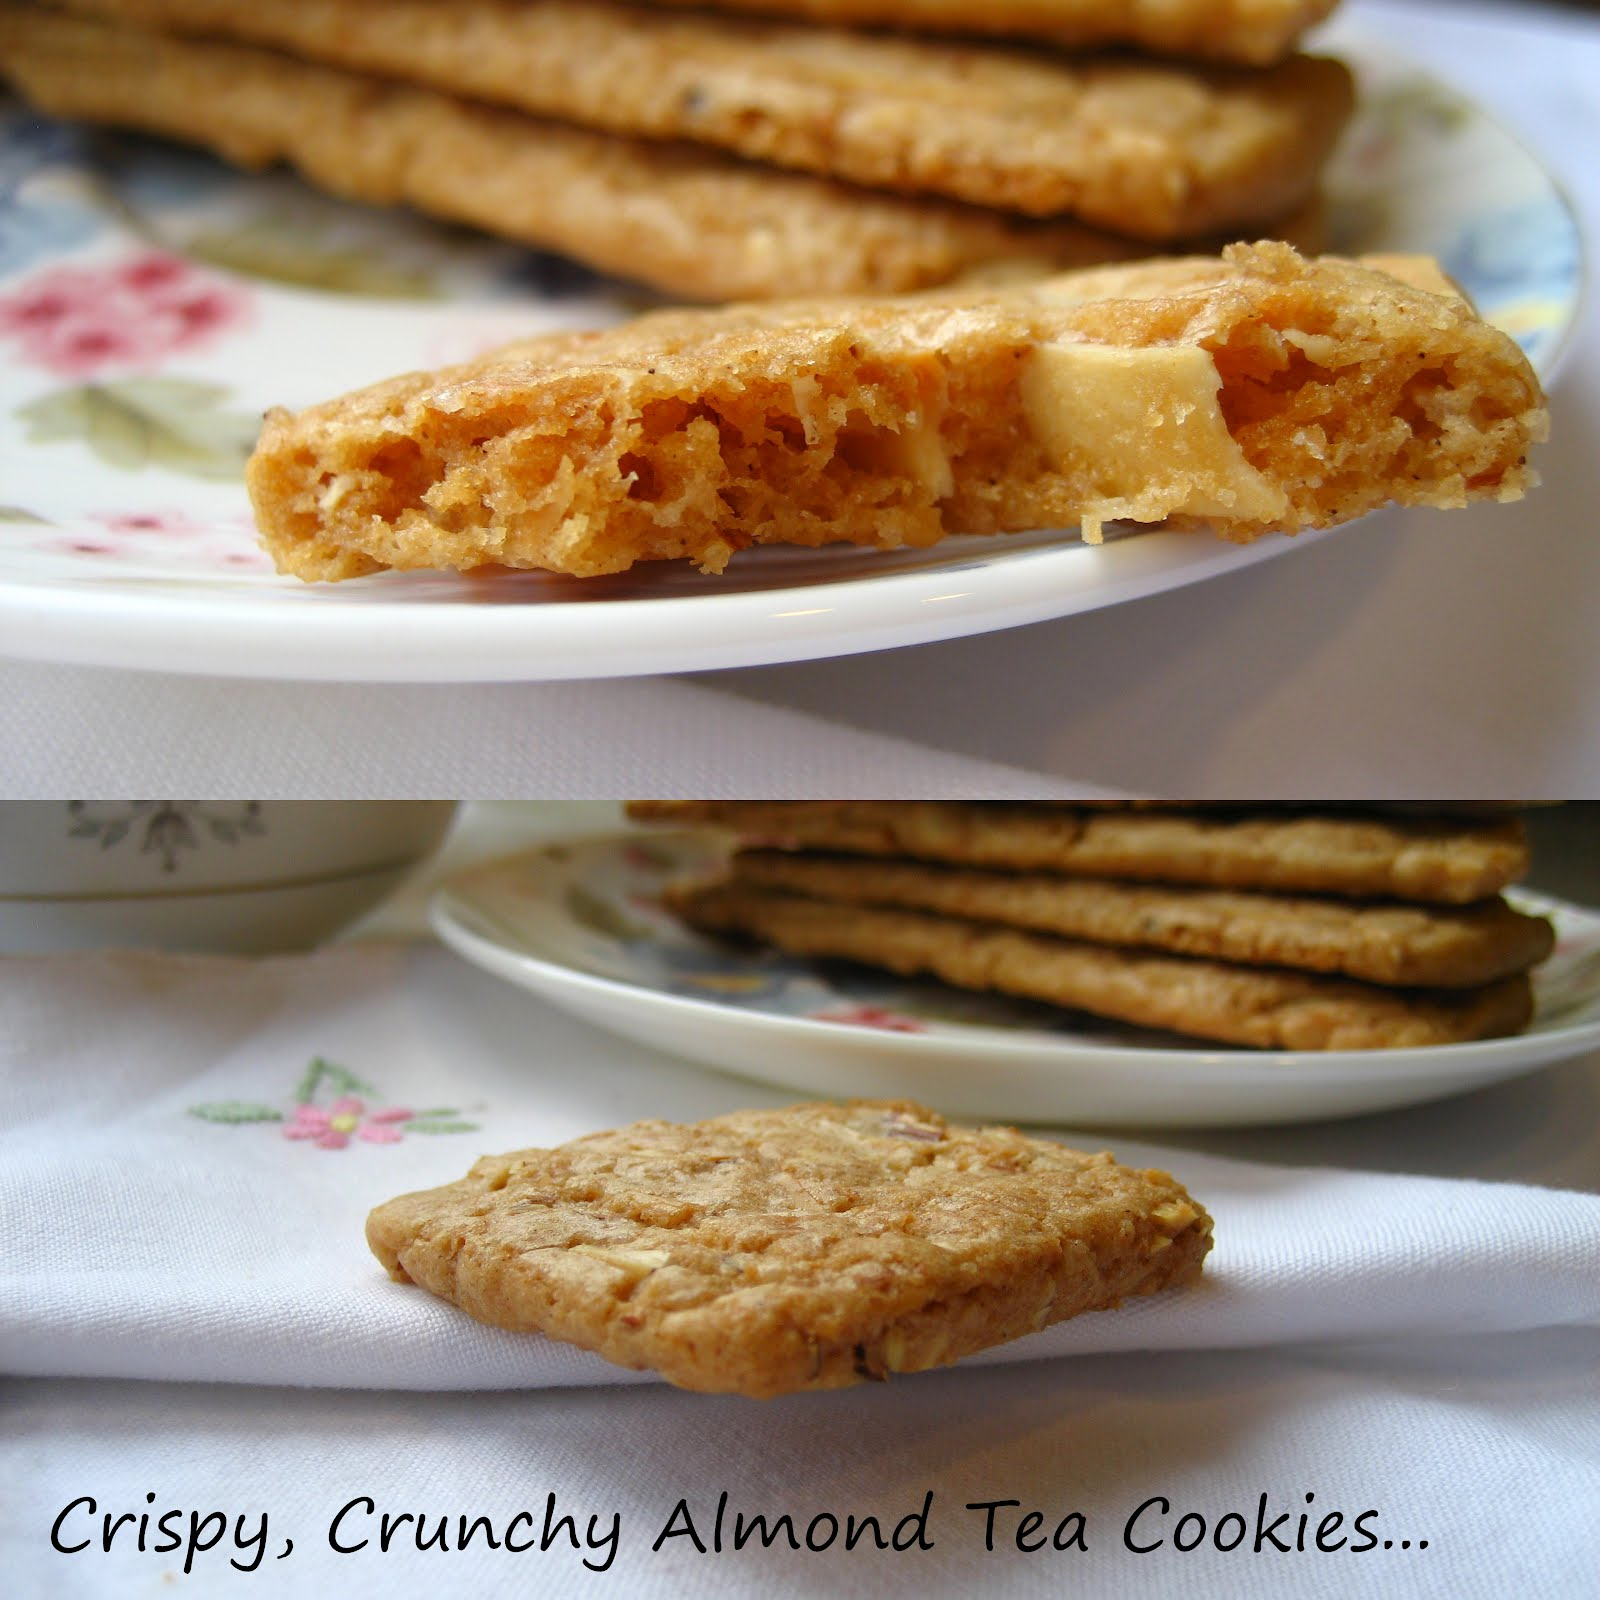 Home Cooking In Montana: Pains d'Amande... Almond Thins(Crunchy ...